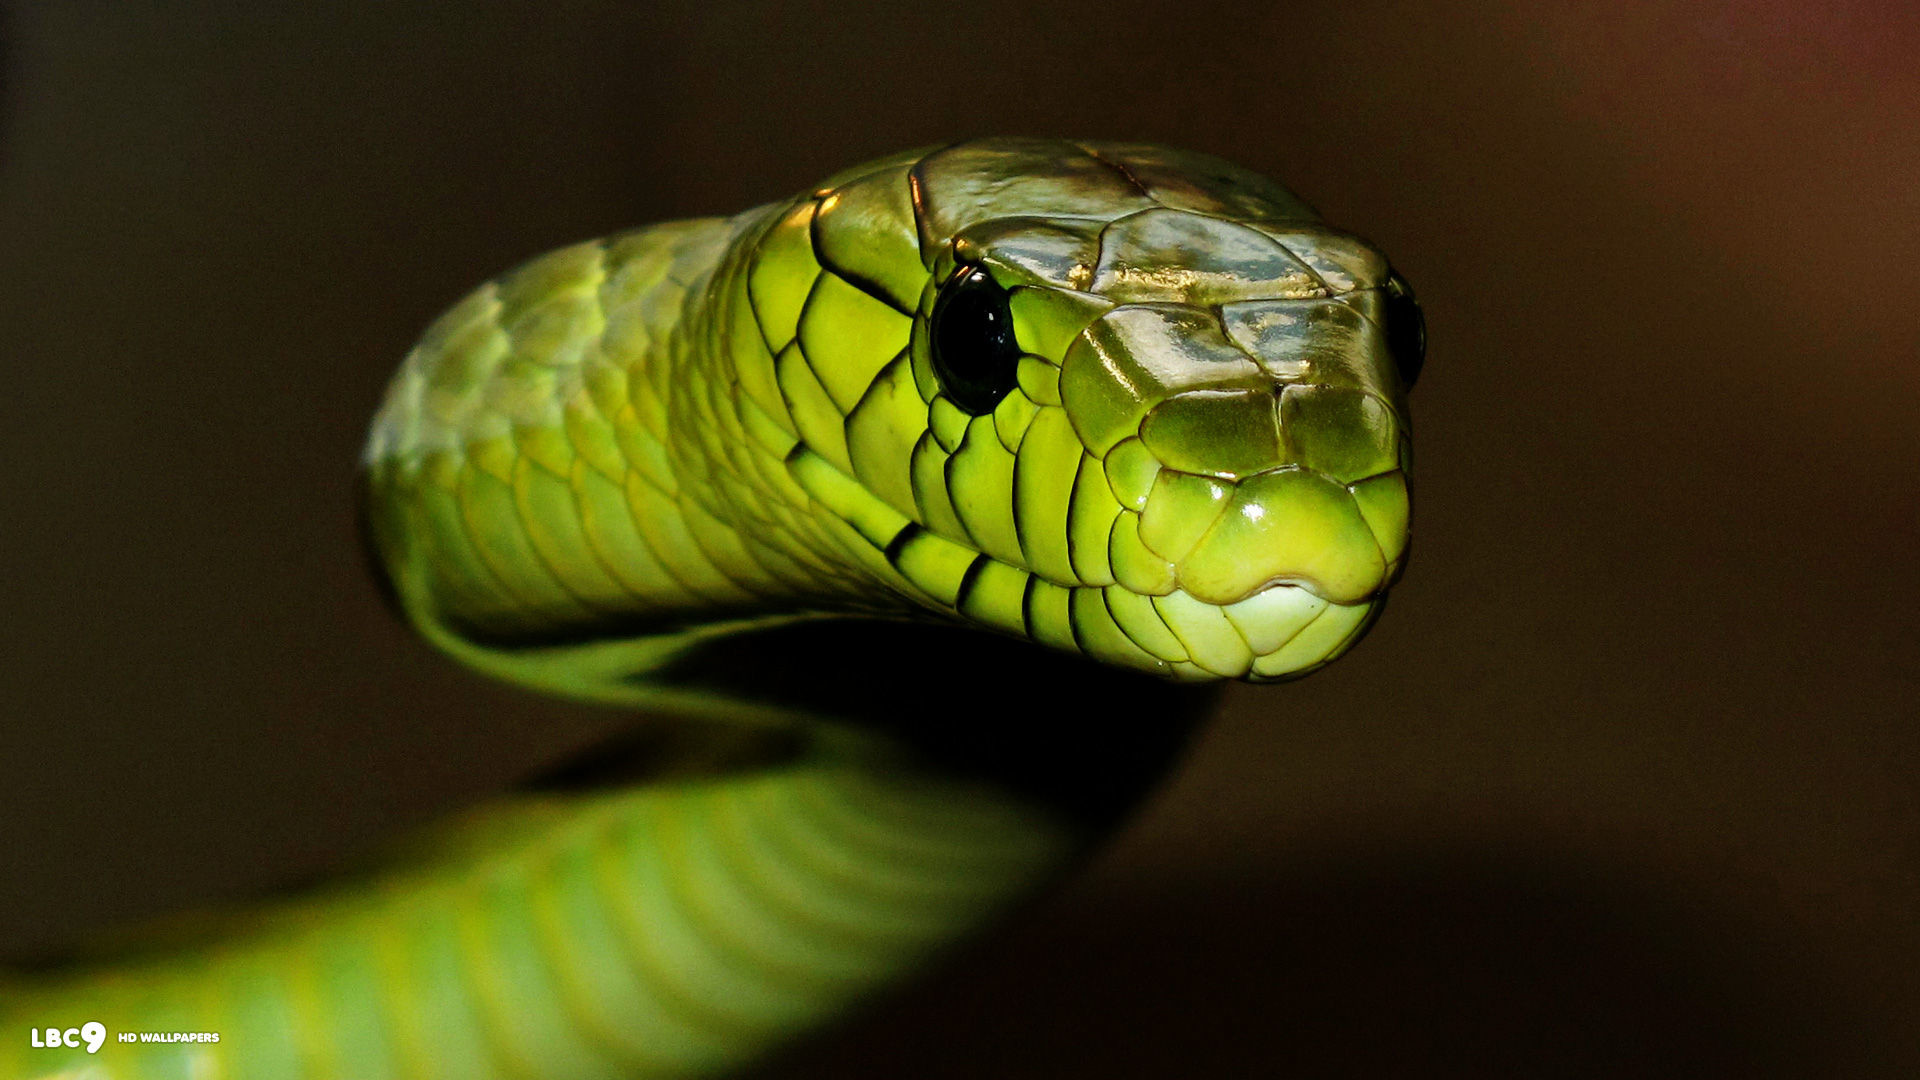 Black Mamba Green Snakes 97901 Hd Wallpaper Backgrounds Download